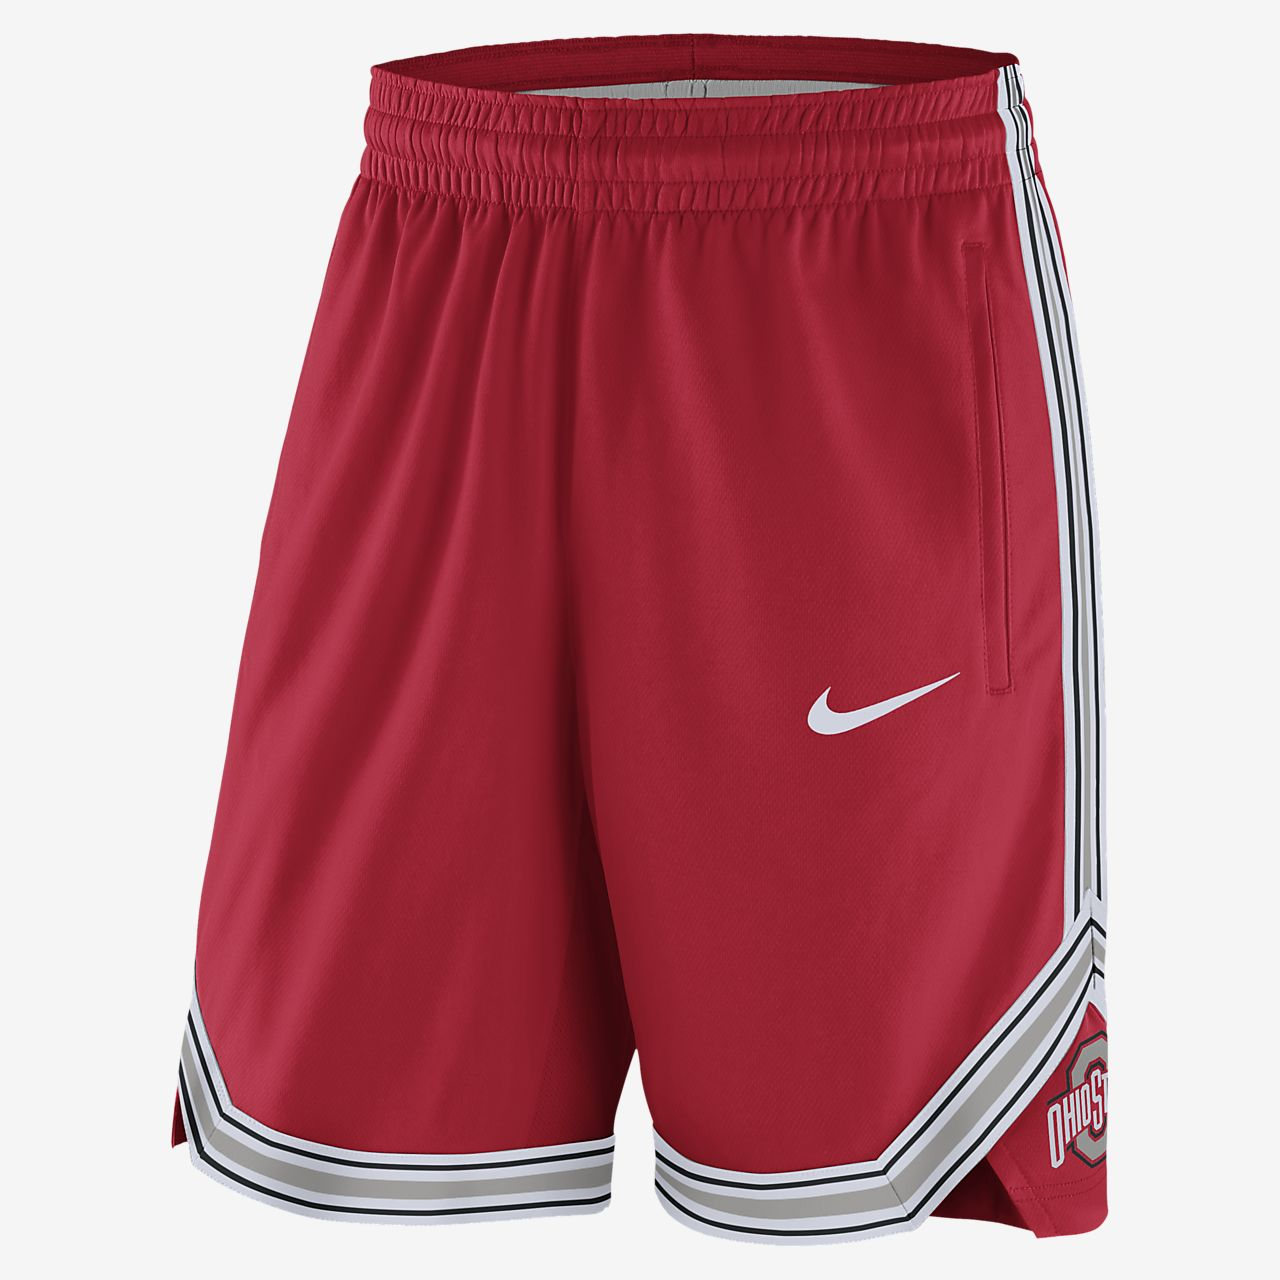 3853c108aef7 Nike College Replica (Ohio State) Men s Basketball Shorts. Nike.com